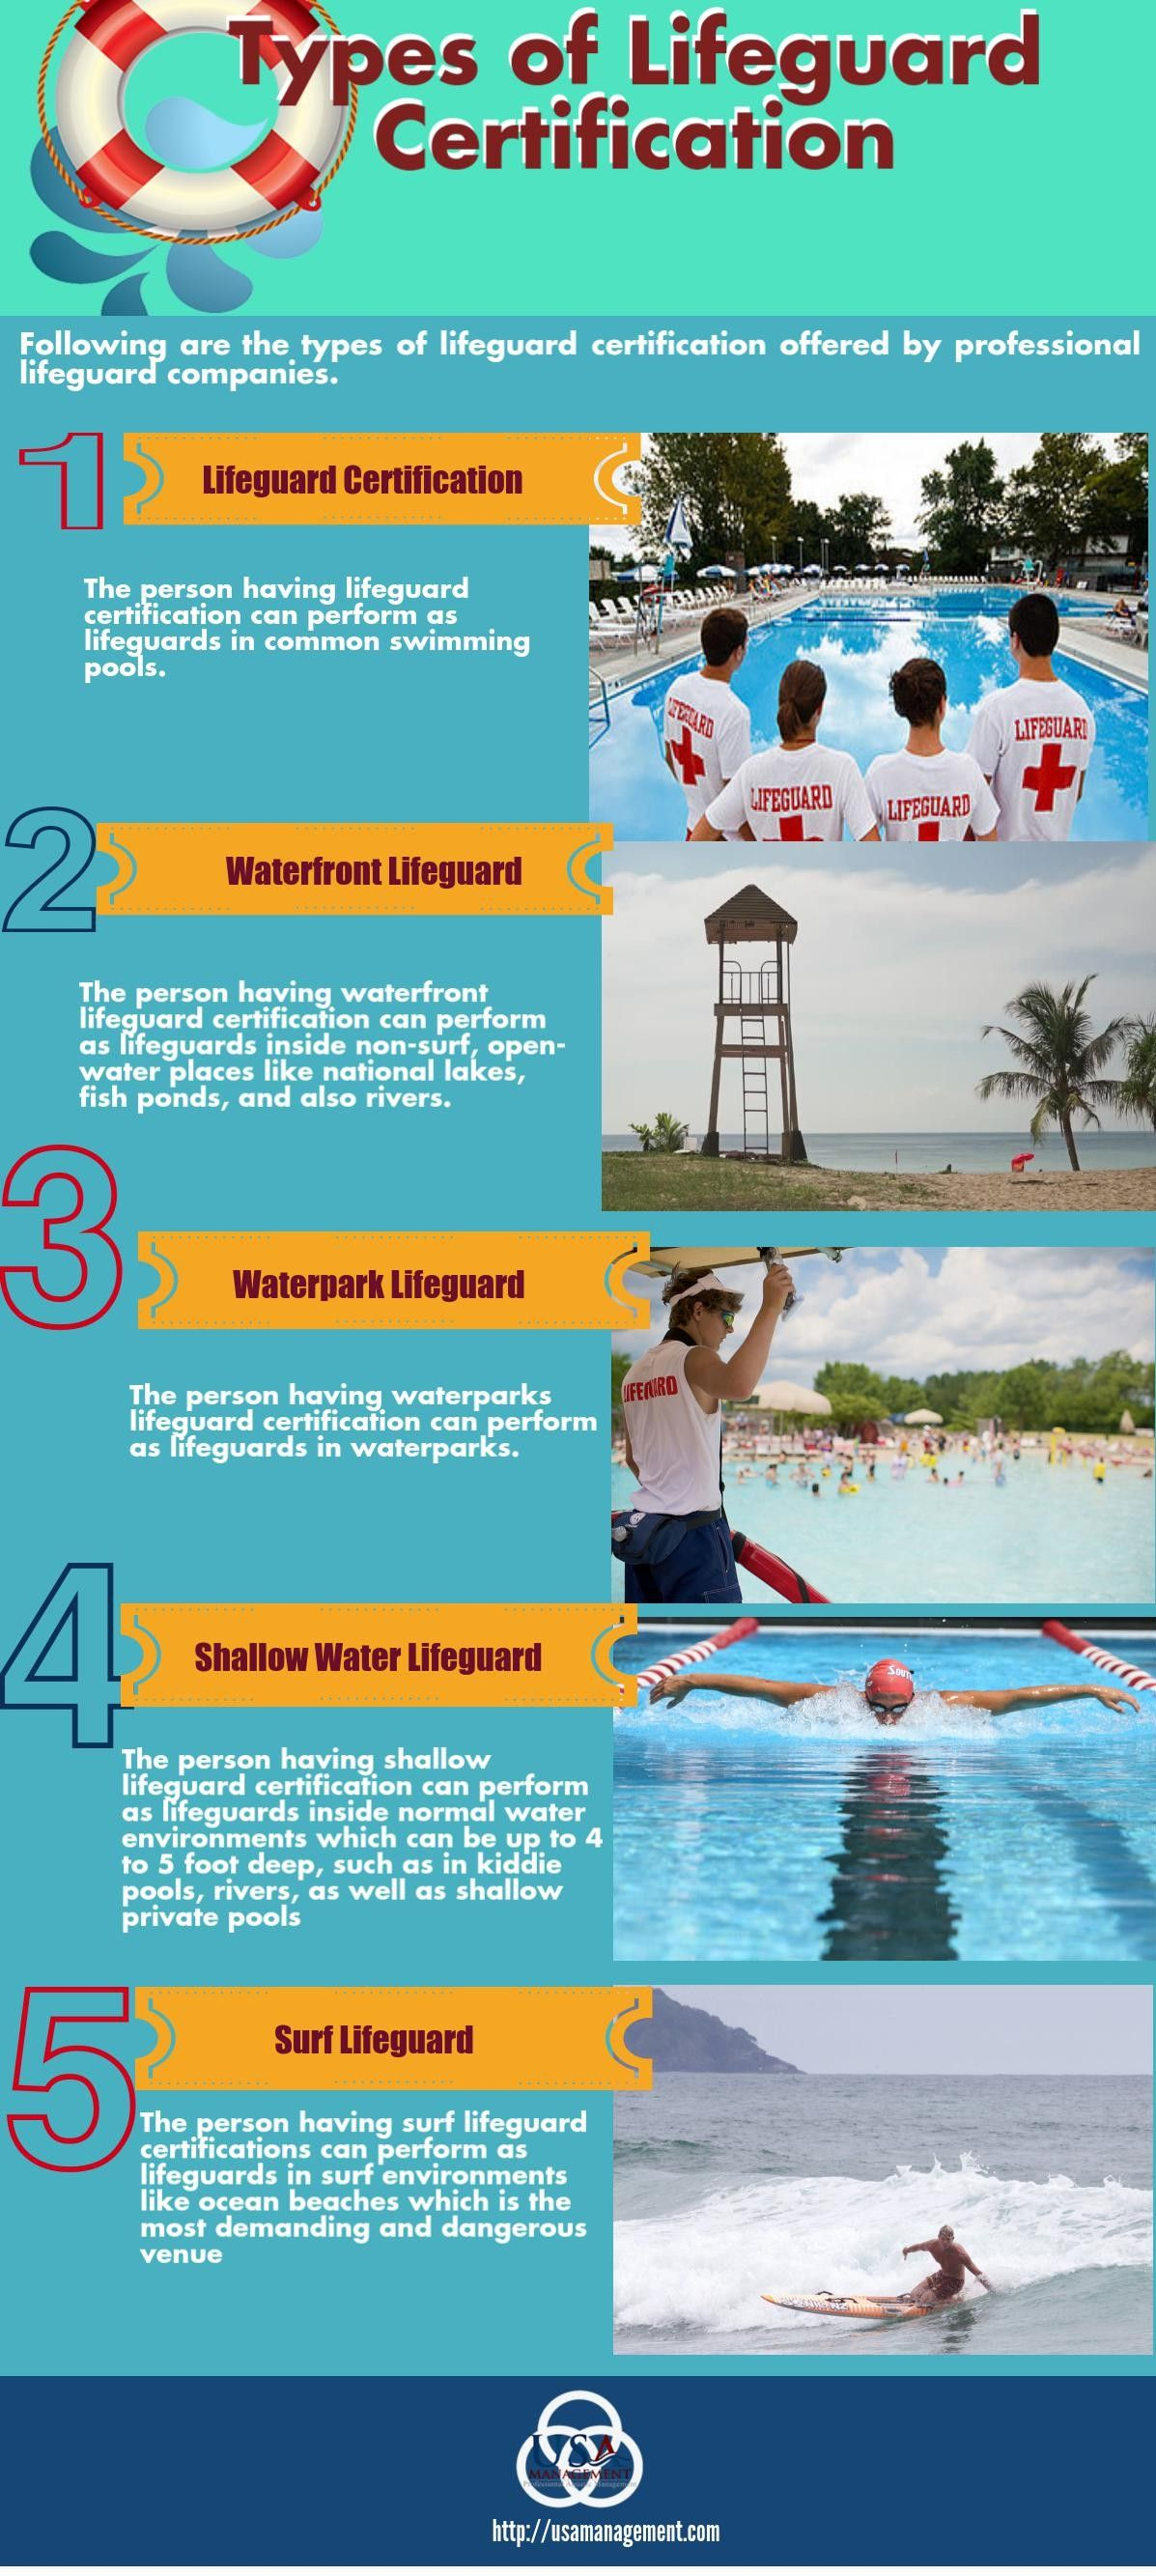 If you want to make career in lifeguardning take a look on if you want to make career in lifeguardning take a look on lifeguard certifications given here 1betcityfo Images